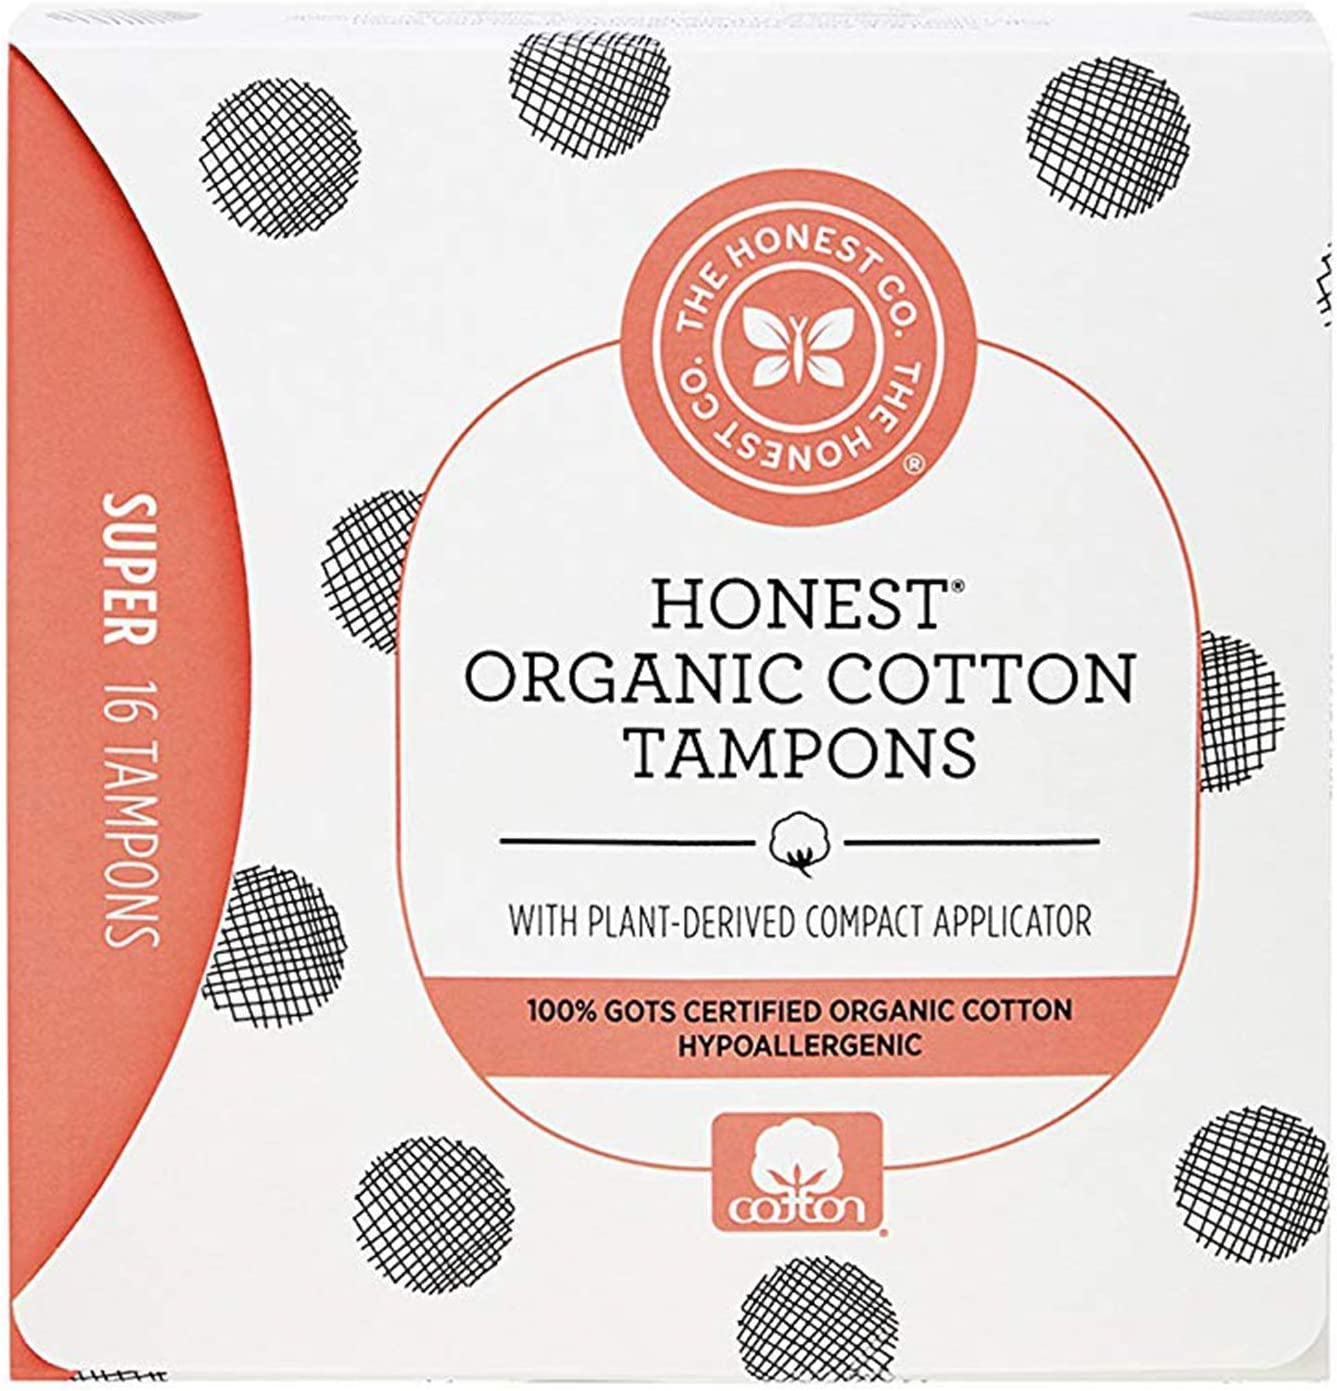 Over item handling Easy-to-use ☆ The Honest Company Organic Cotton Tampons Plant-Based Compa with